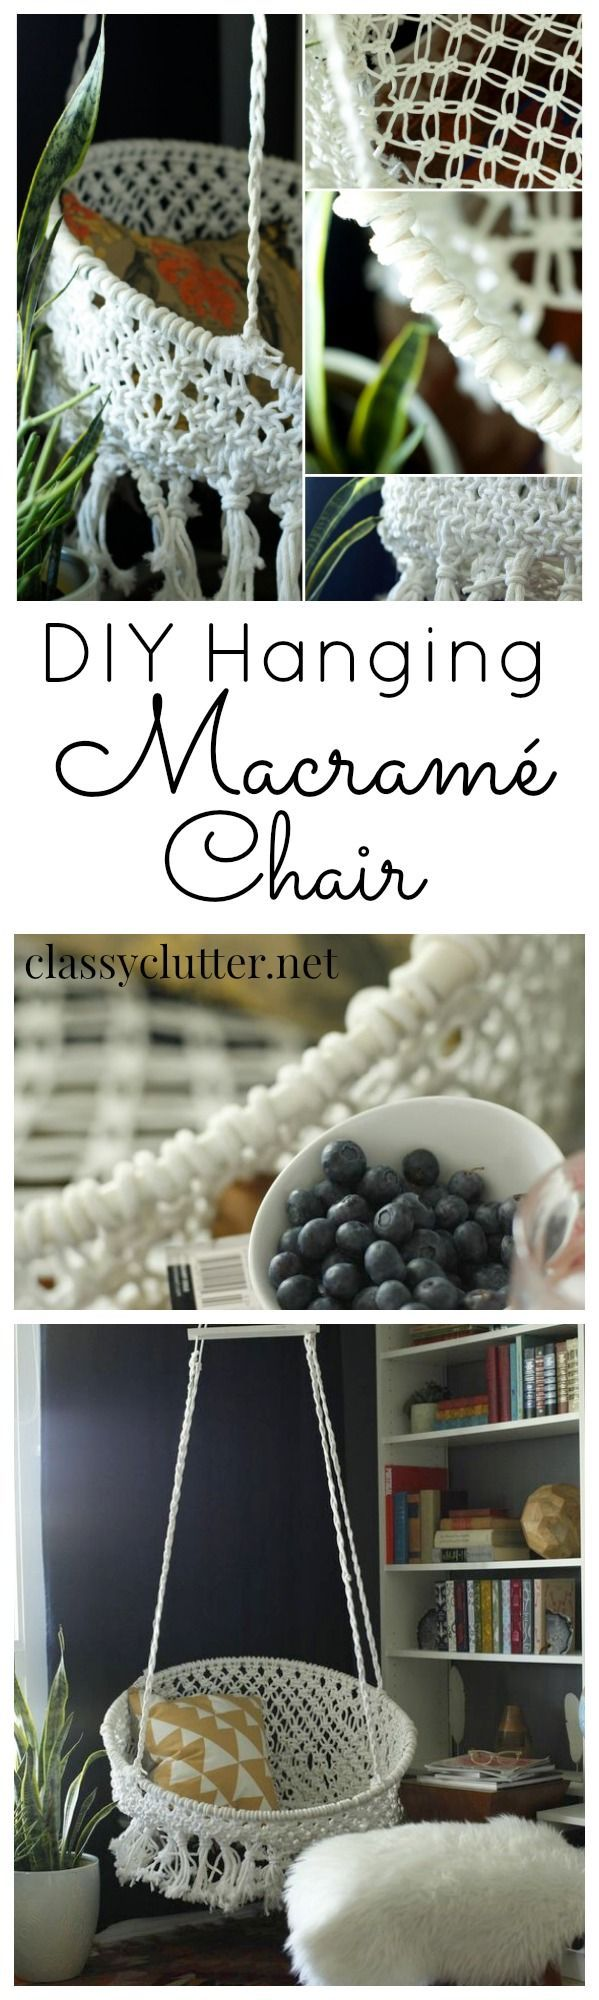 #DIY Home Decor Idea - Hanging Macrame Chair from ClassyClutter.net